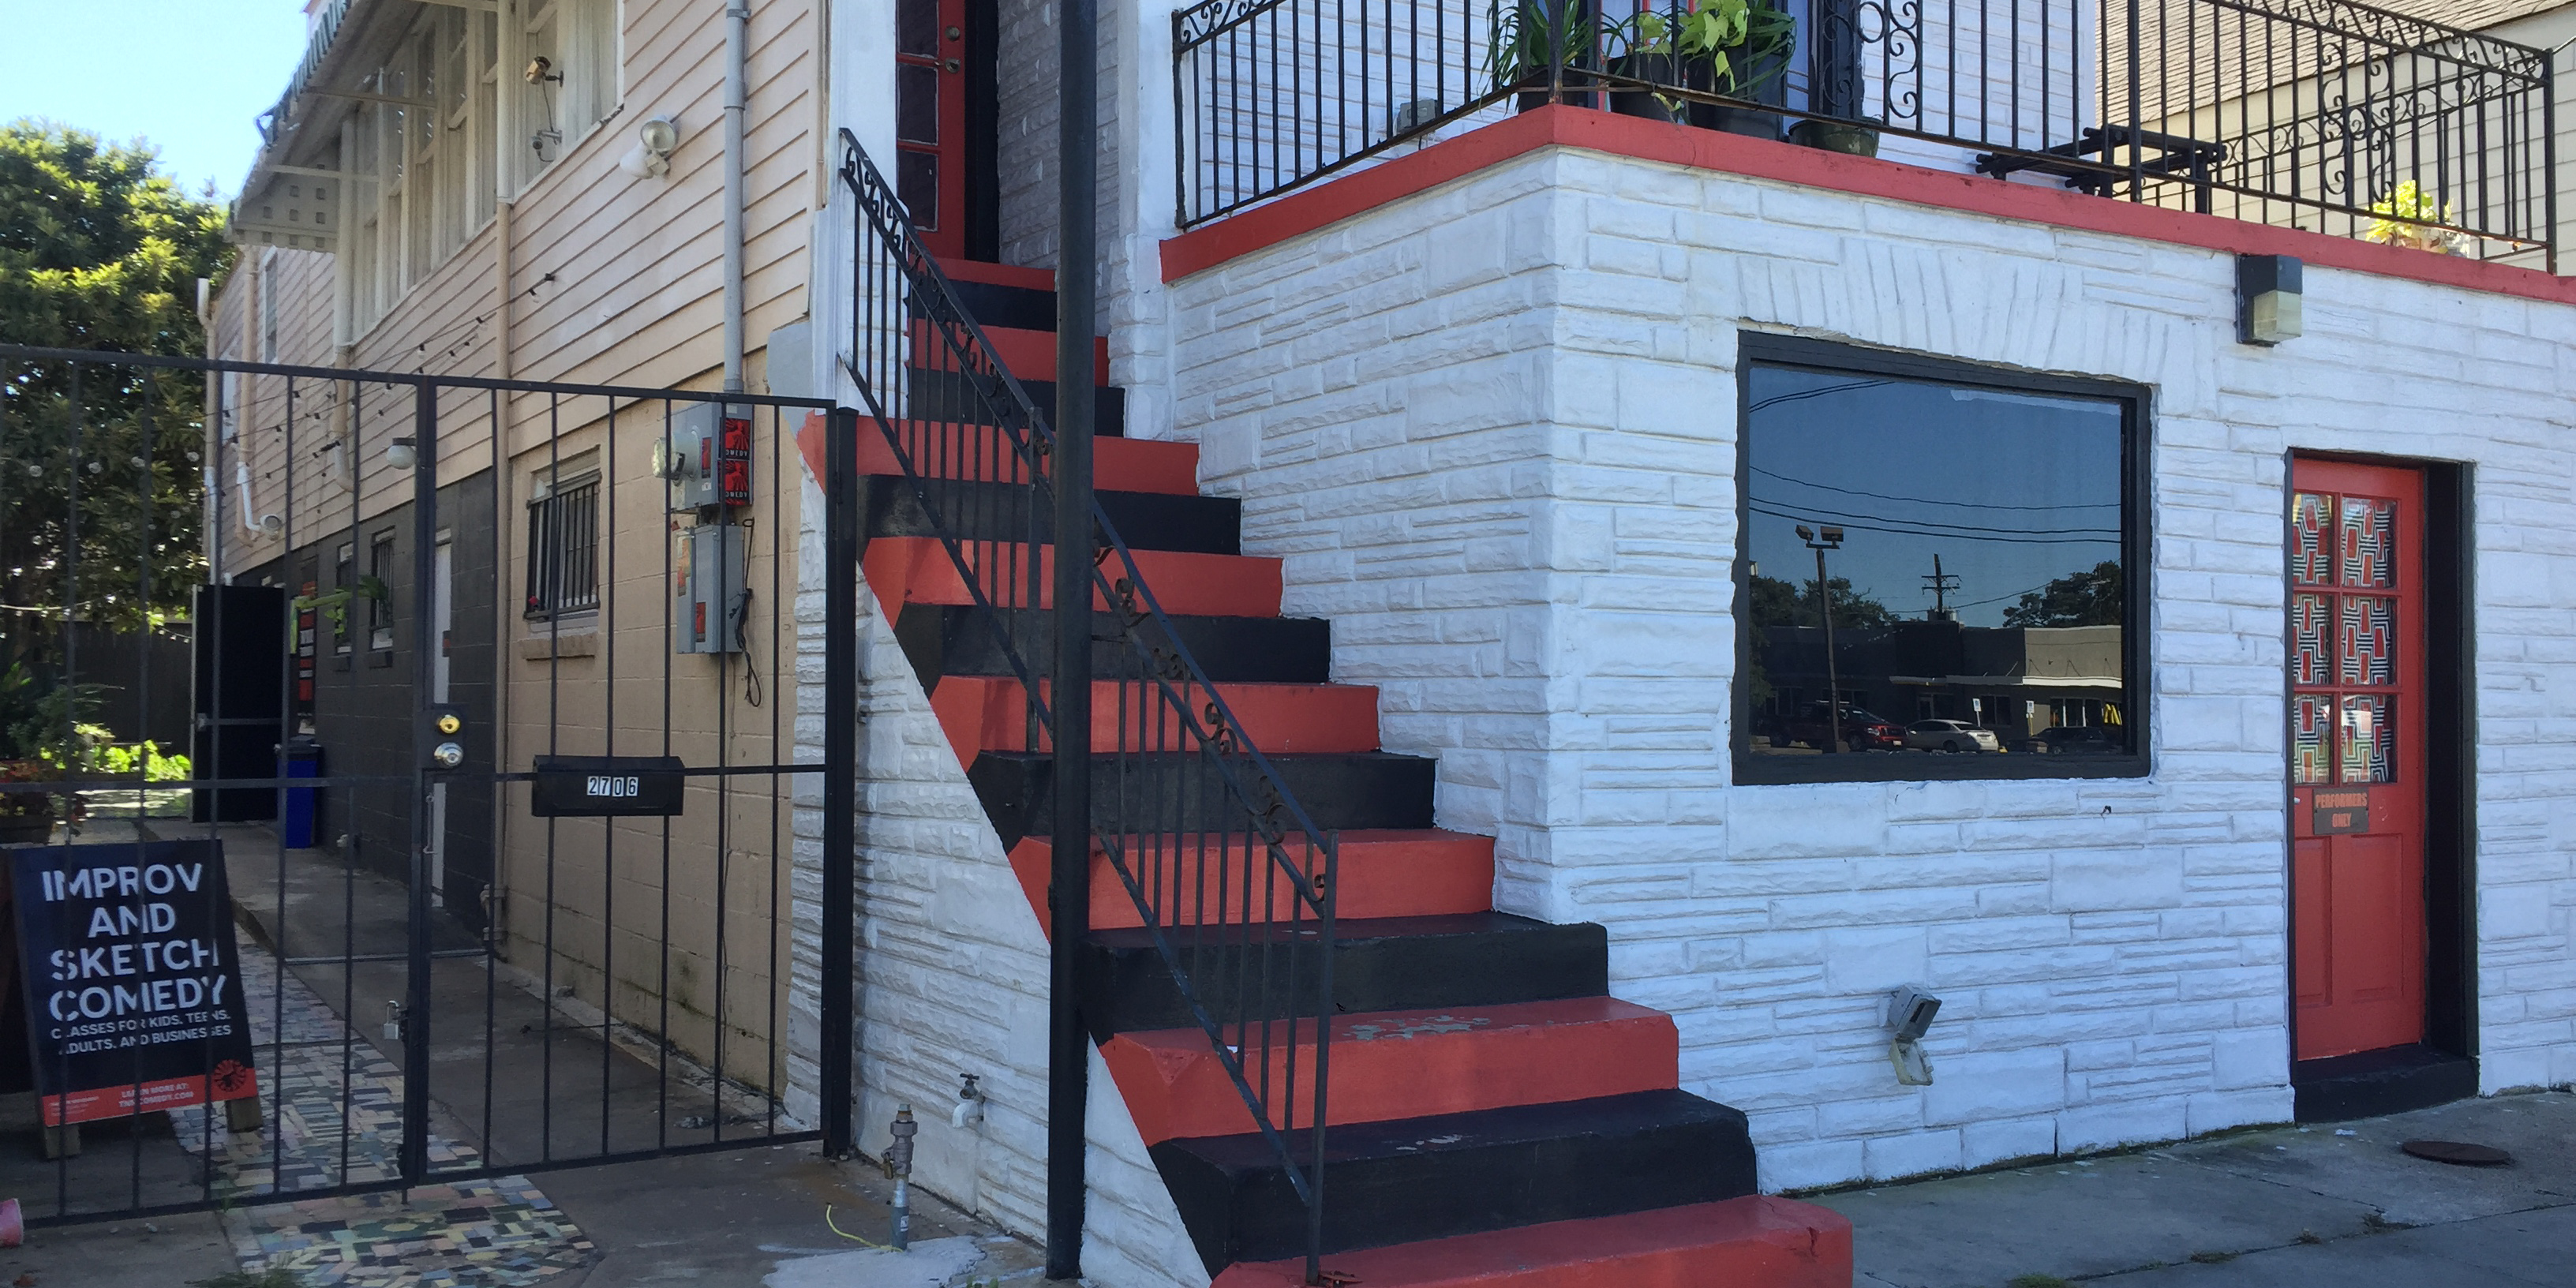 [image description: exterior of The New Movement theater. Building with bick front painted white, black and red alternating stairs and a gate to one side with a sign visible that says improv and sketch]